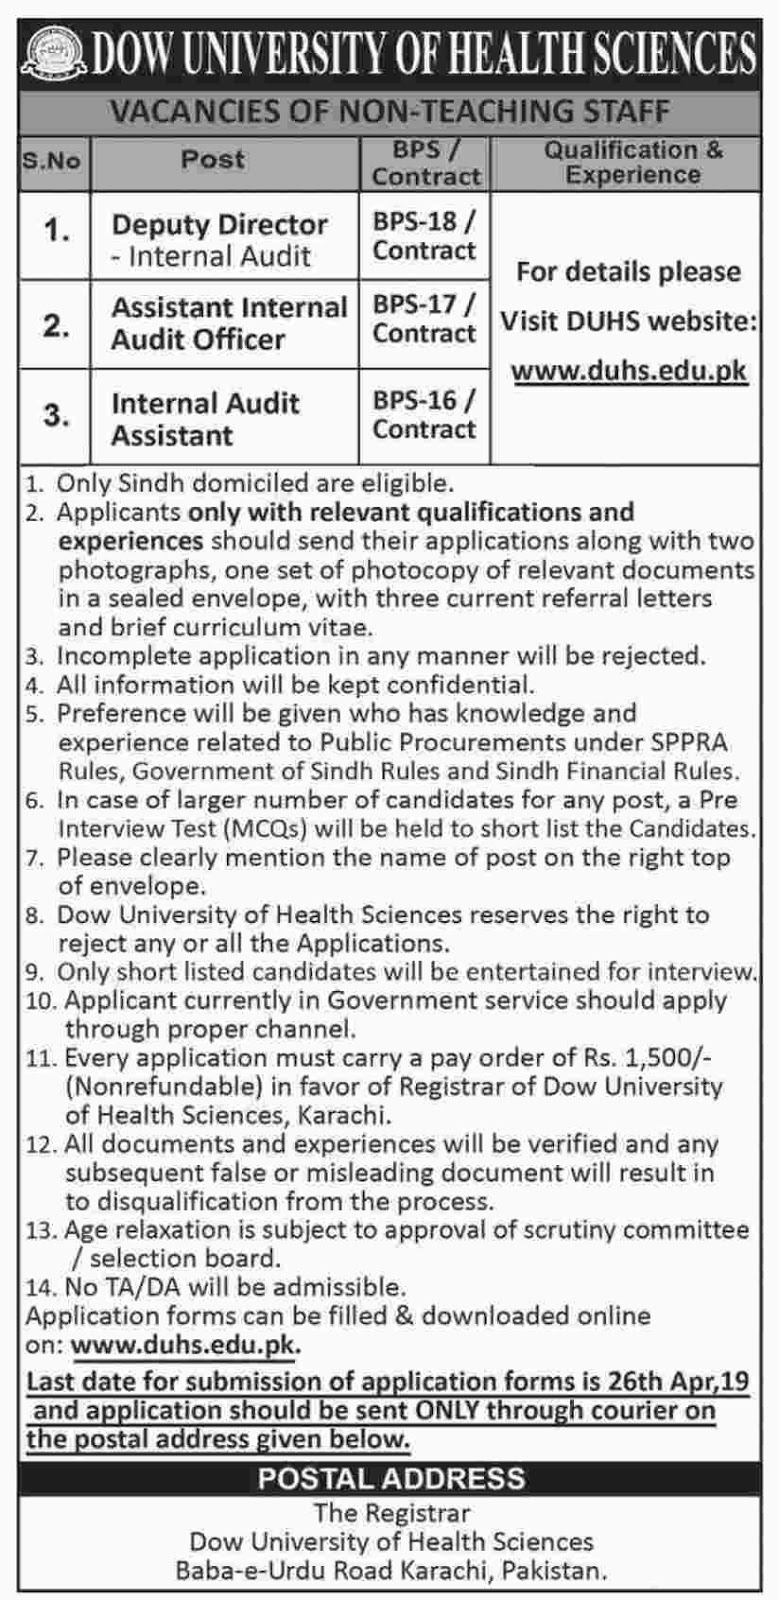 Jobs In Dow University Of Health Sciences 2019